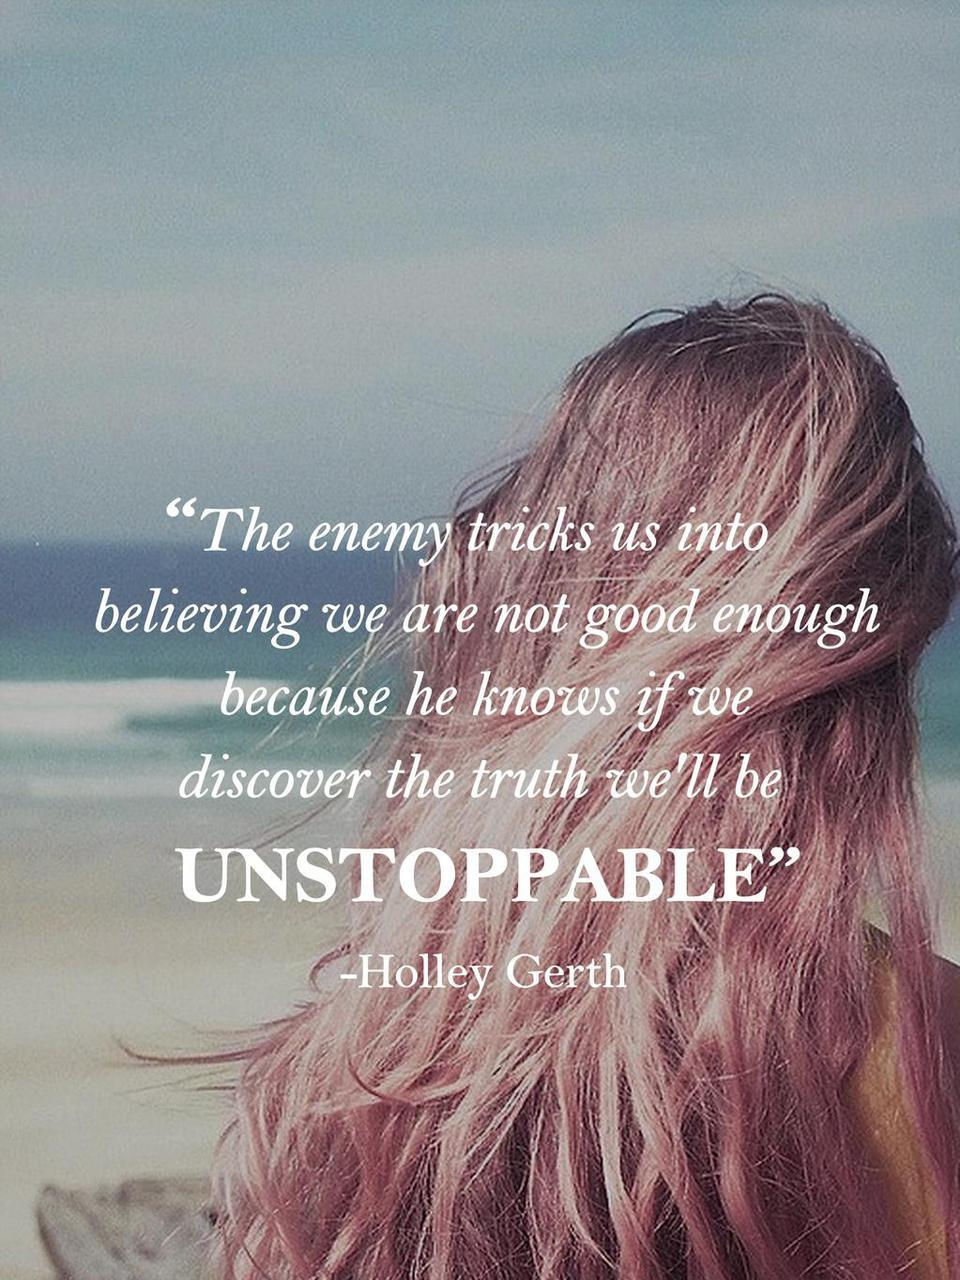 Good enough quote The enemy tricks us into believing we are not good enough because he knows if we